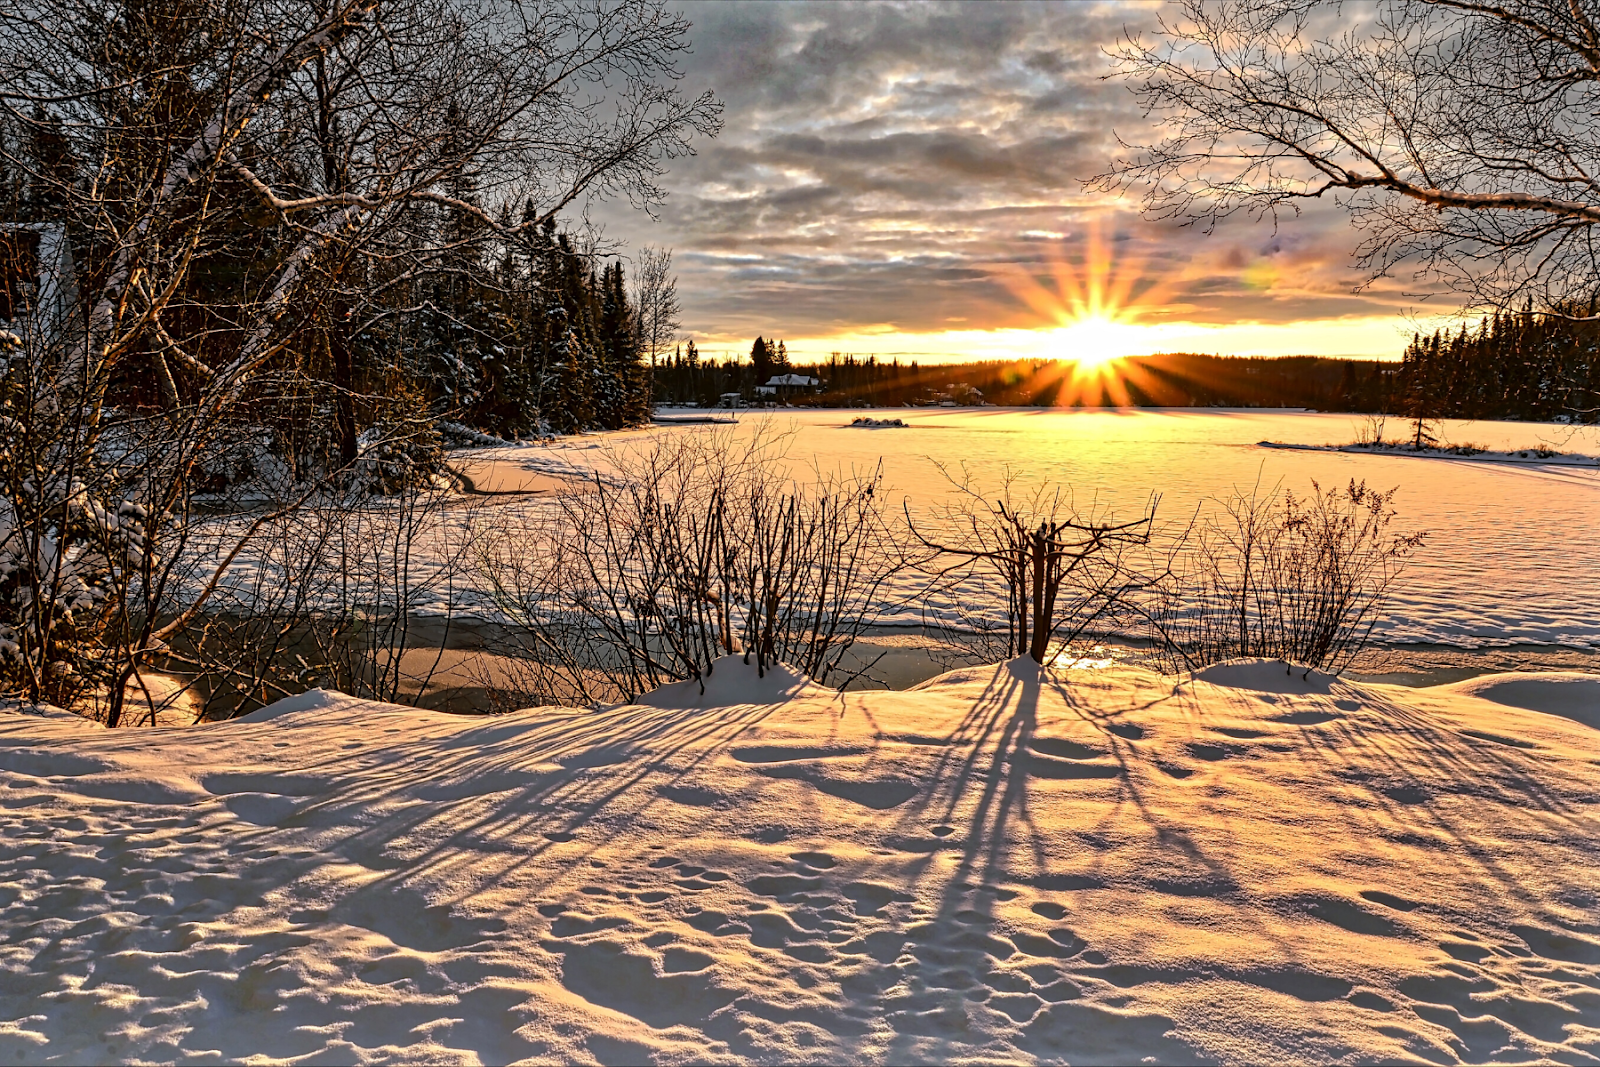 A winter scene at sunset